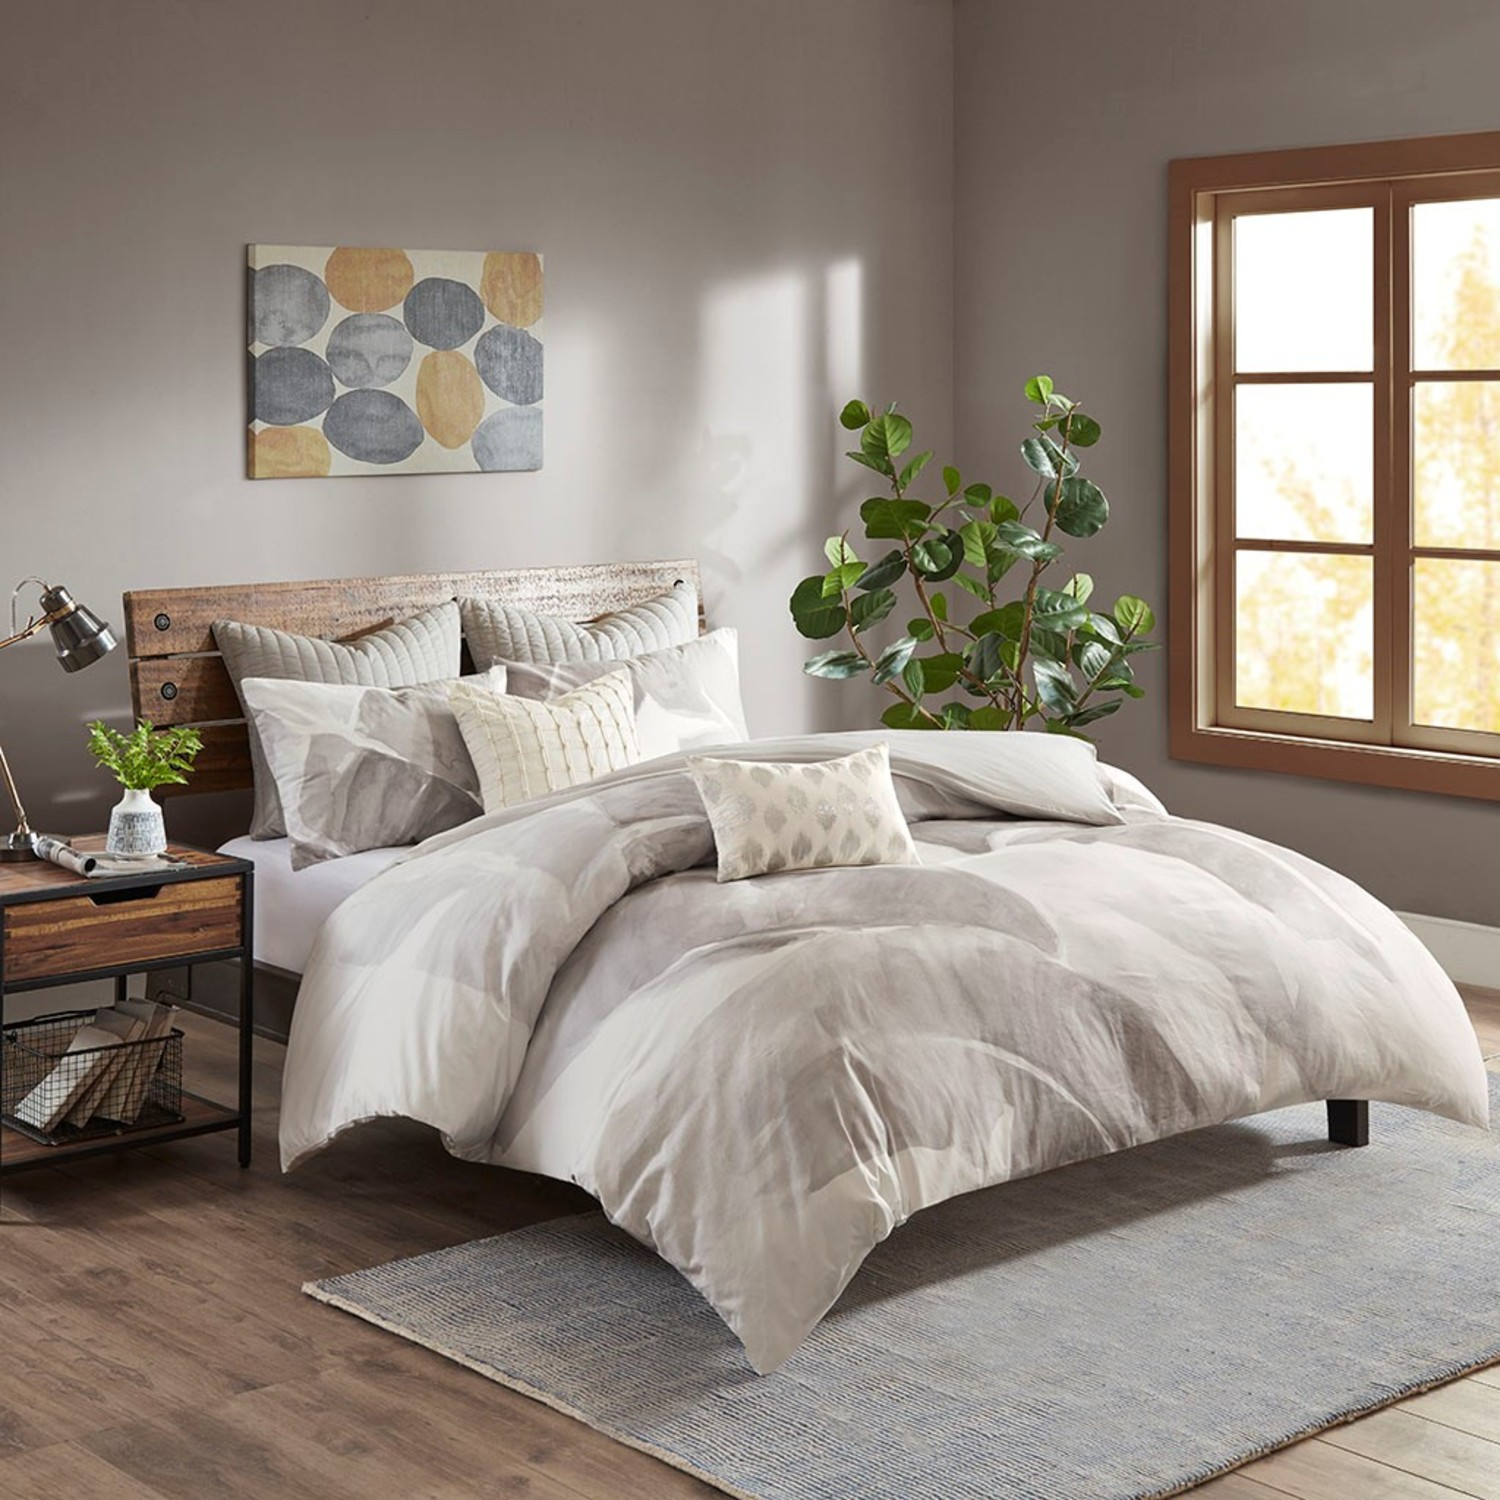 Charlotte by Ink & Ivy Bedding